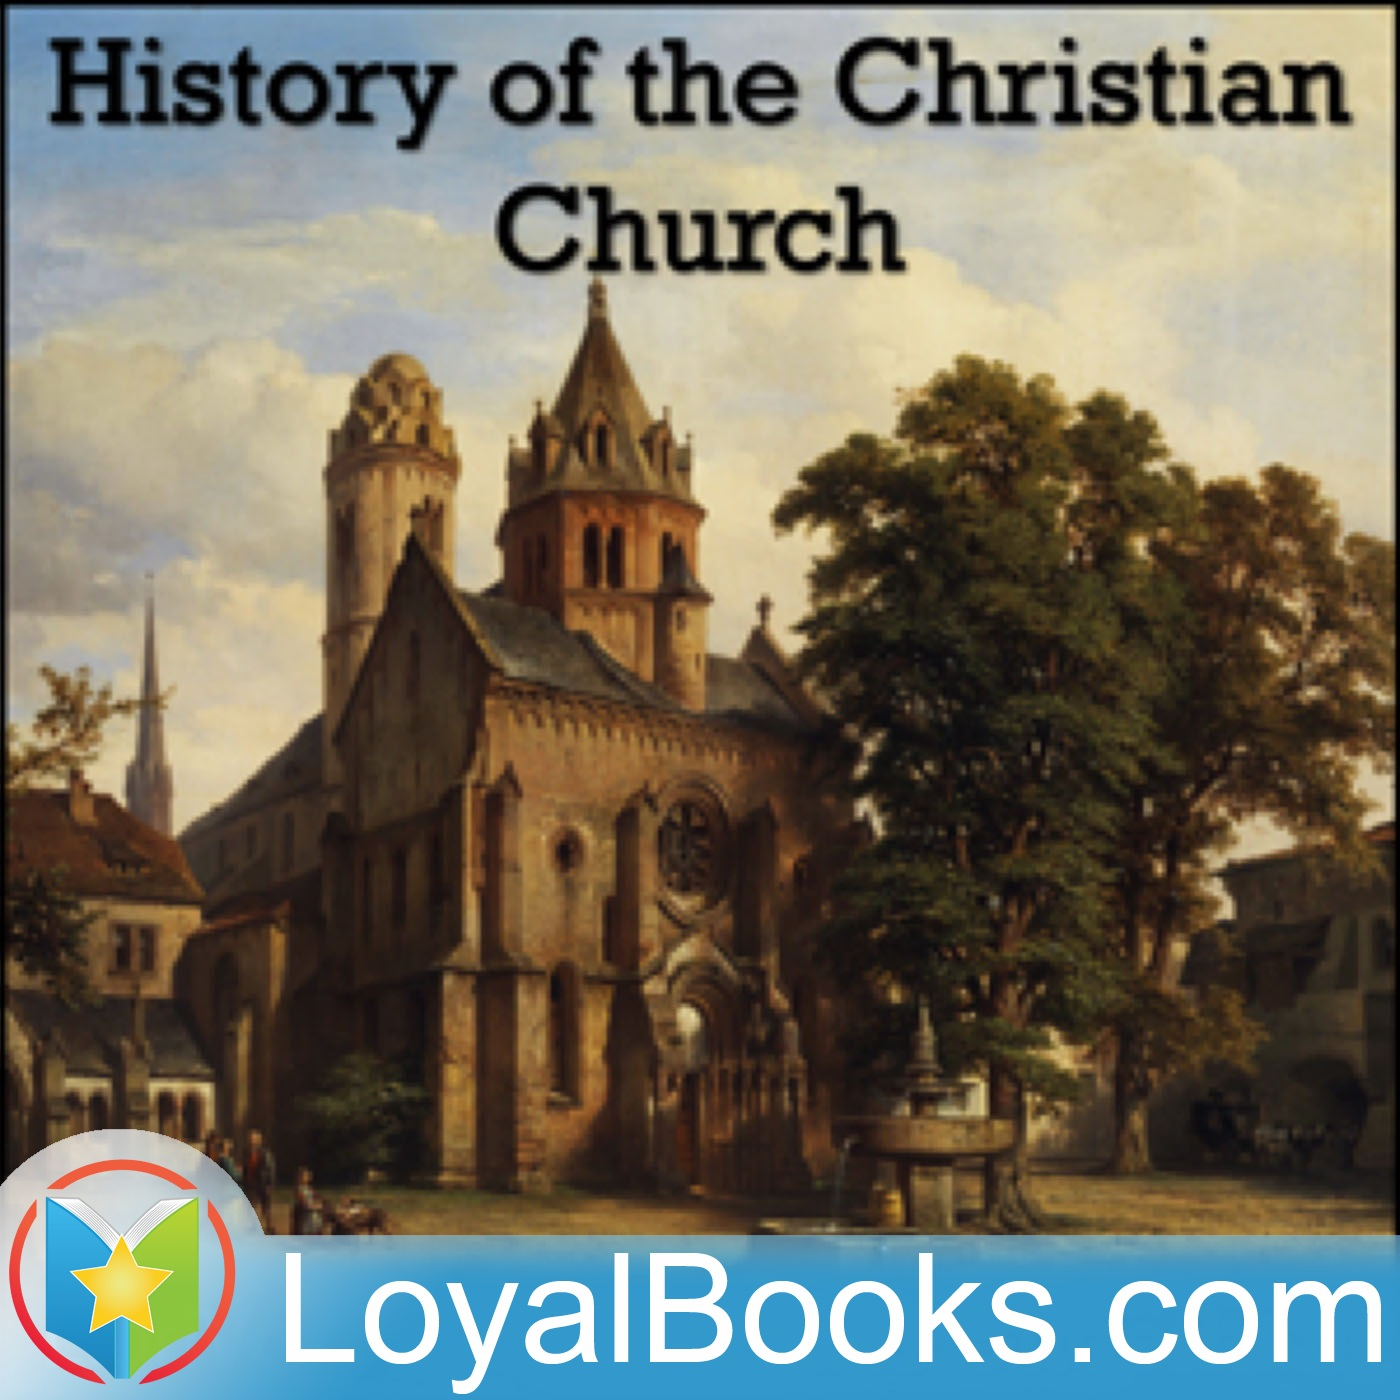 <![CDATA[History of the Christian church by Samuel Cheetham]]>